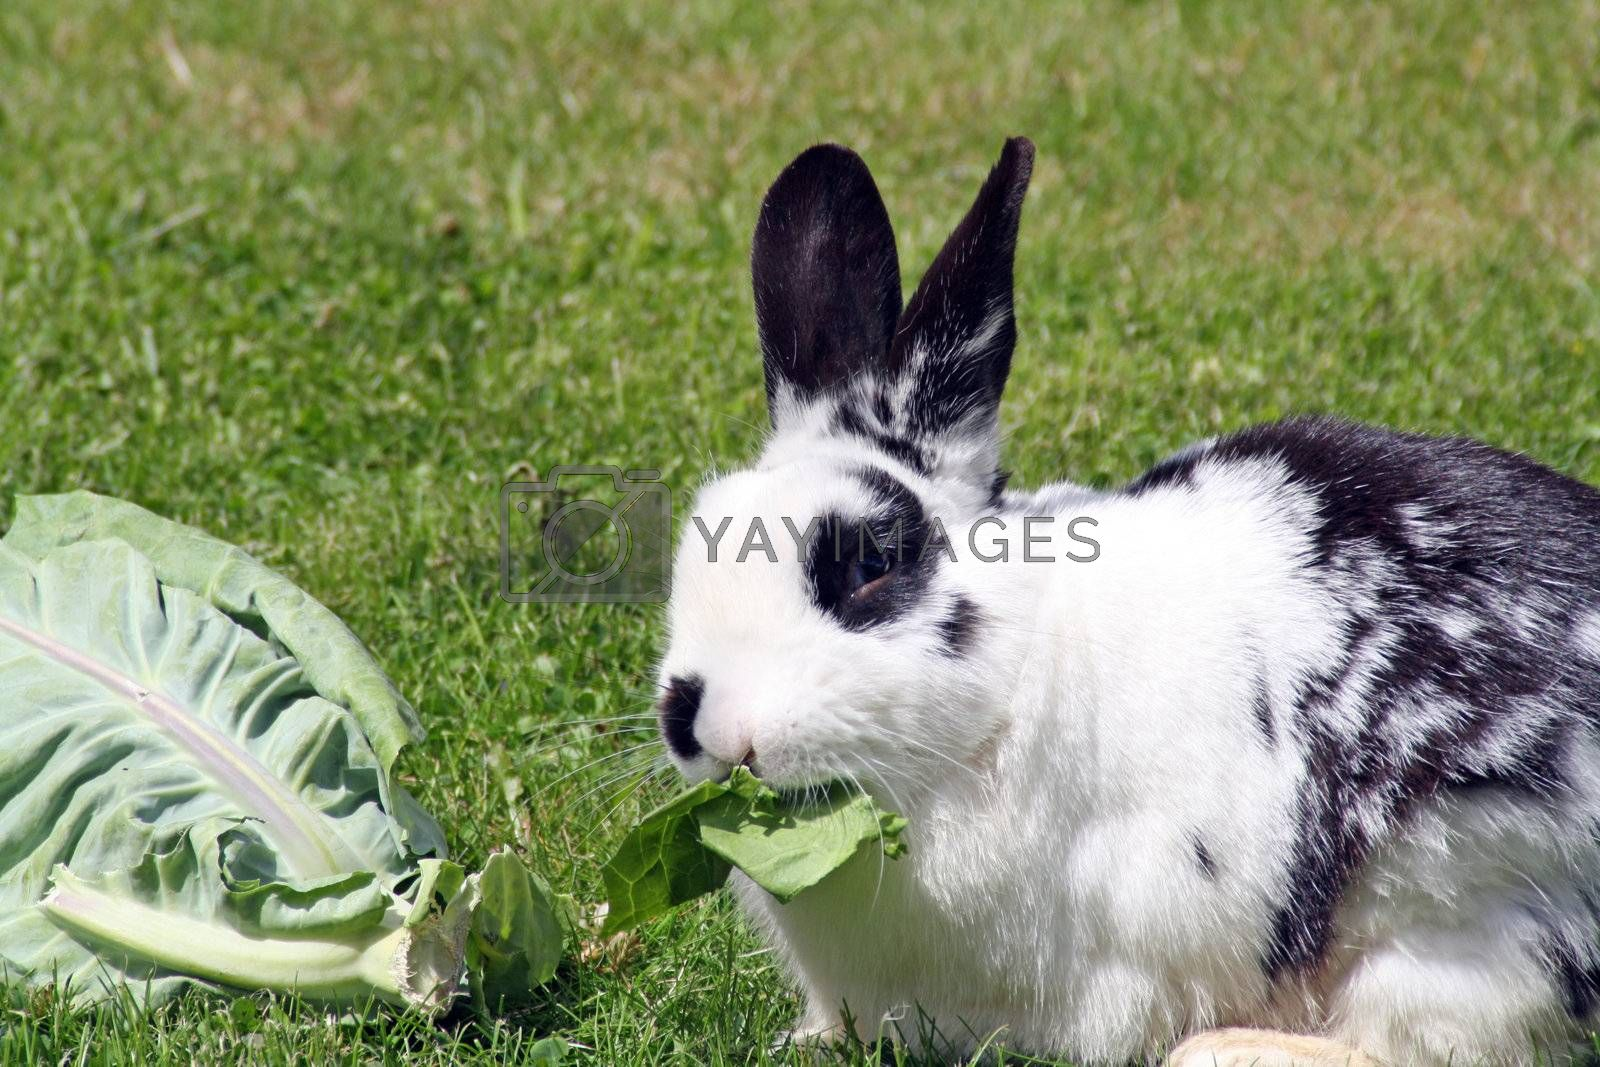 rabbit eating cabbage in the garden